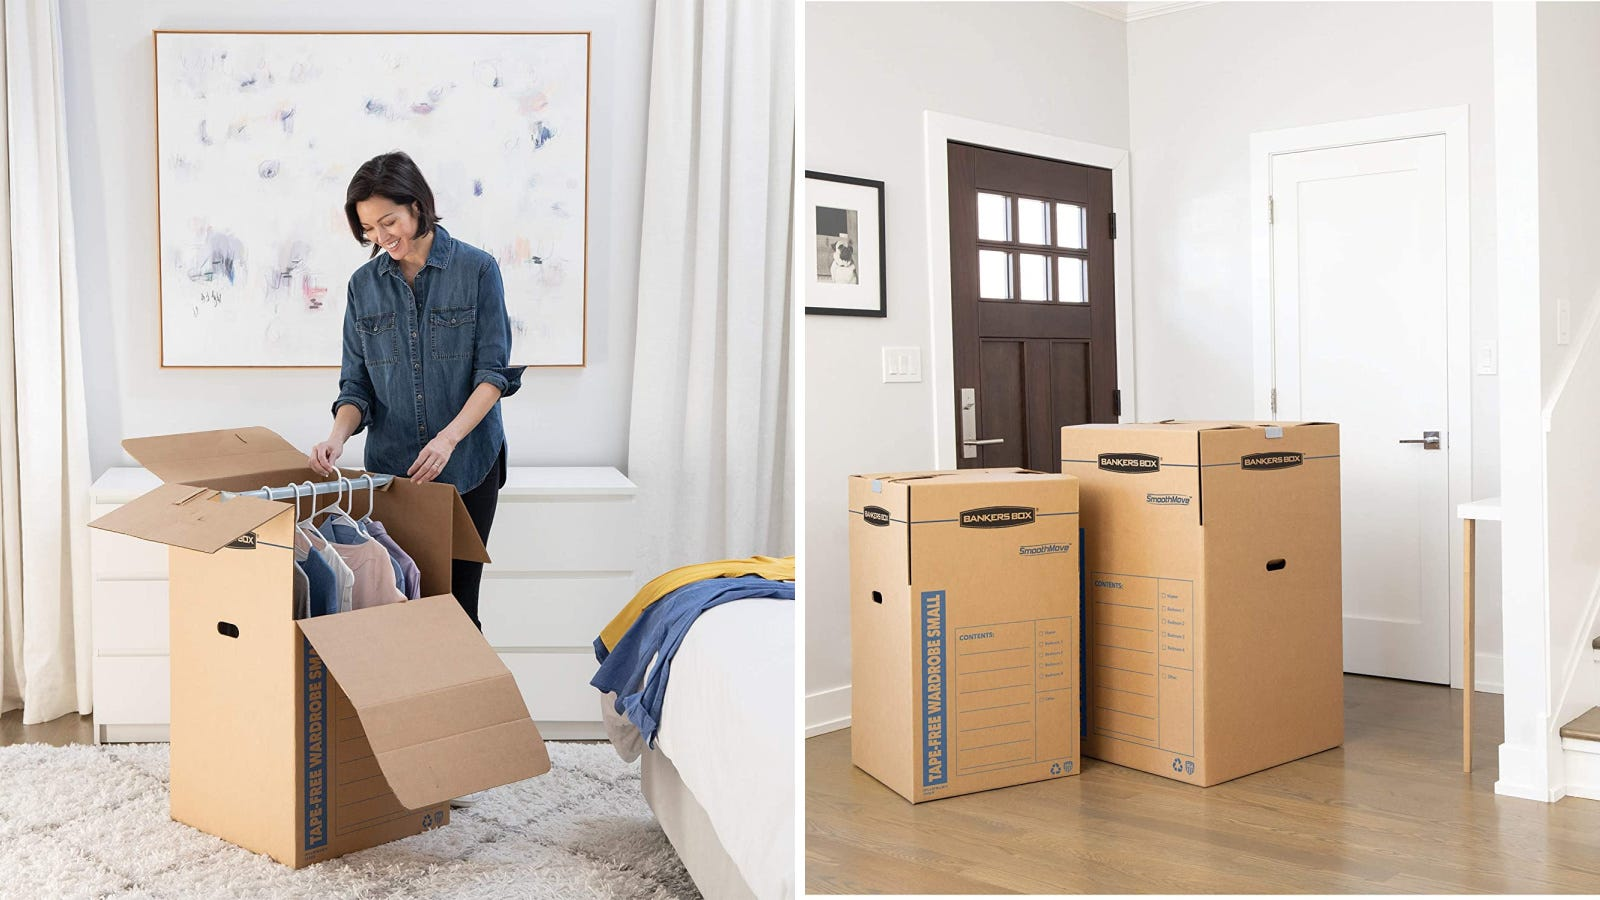 Two images of a woman packing a large wardrobe box with hanging clothes, to avoid wrinkling and folding, with an image of two wardrobe boxes placed by the door, ready for movers to grab and store in the truck.